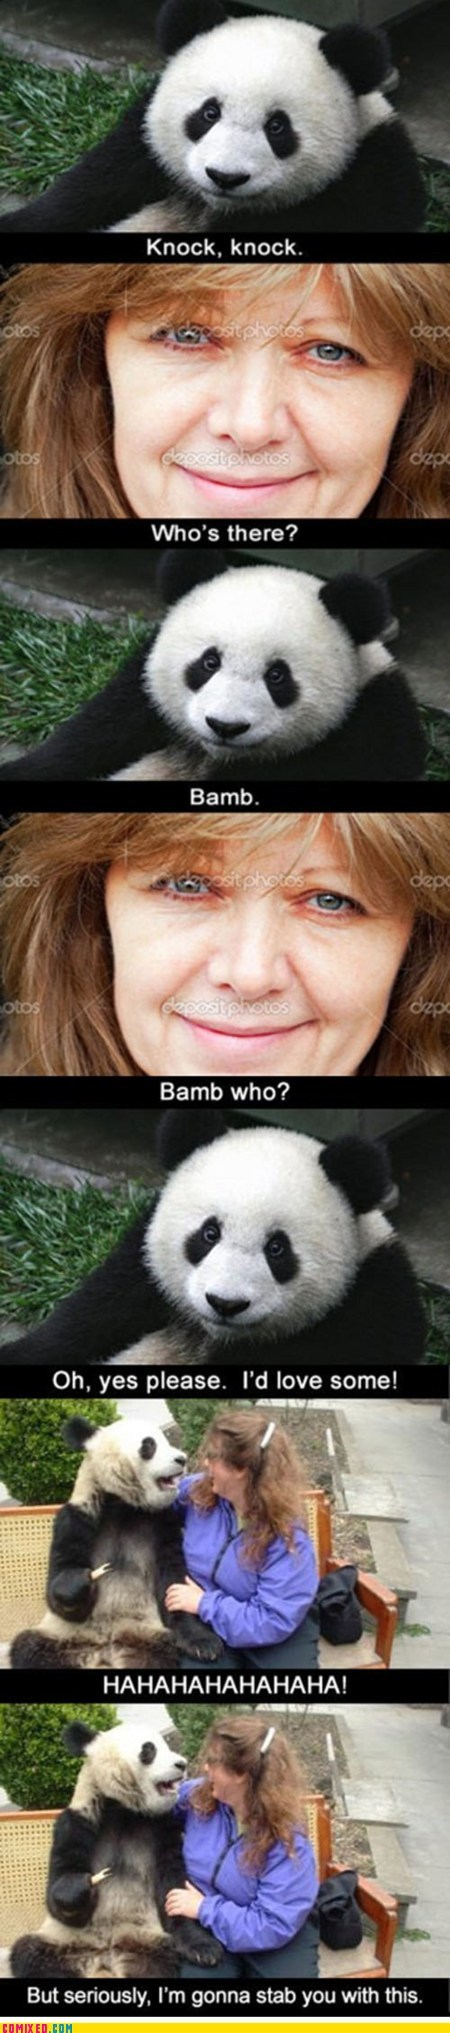 animals,best of week,cute,knock knock,panda,stabbed